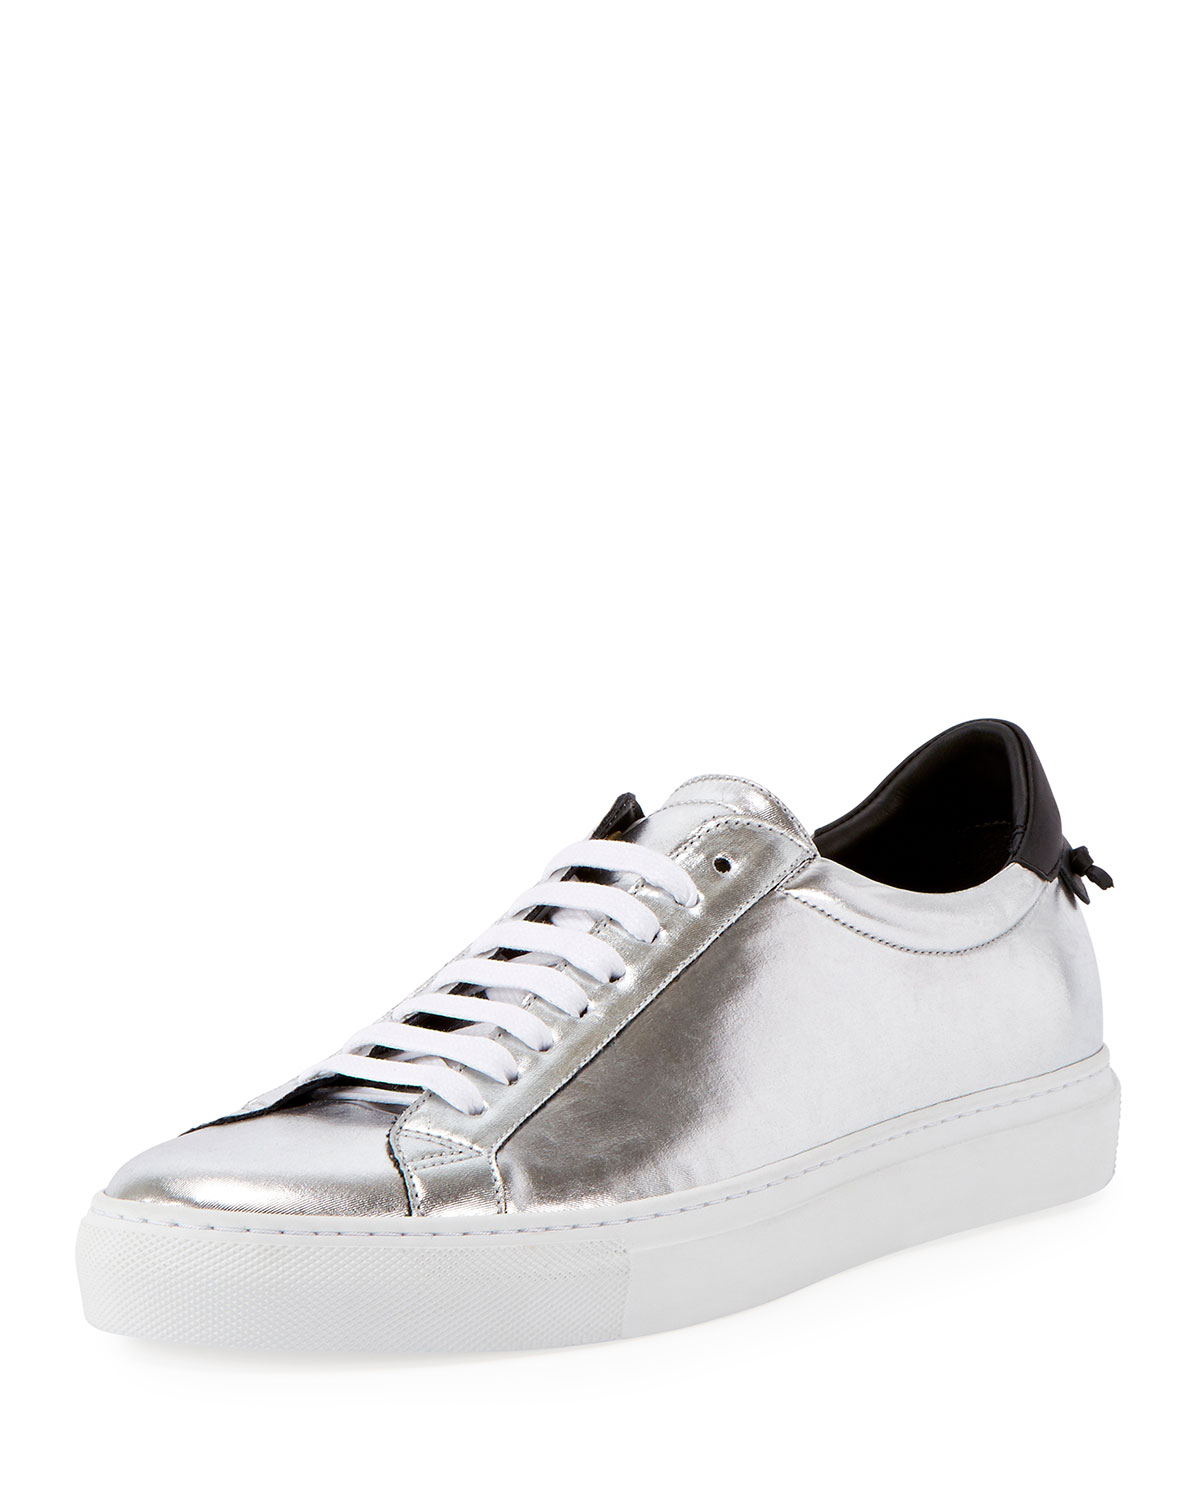 Urban Street low-top sneakers - Metallic Givenchy mSEoXNb